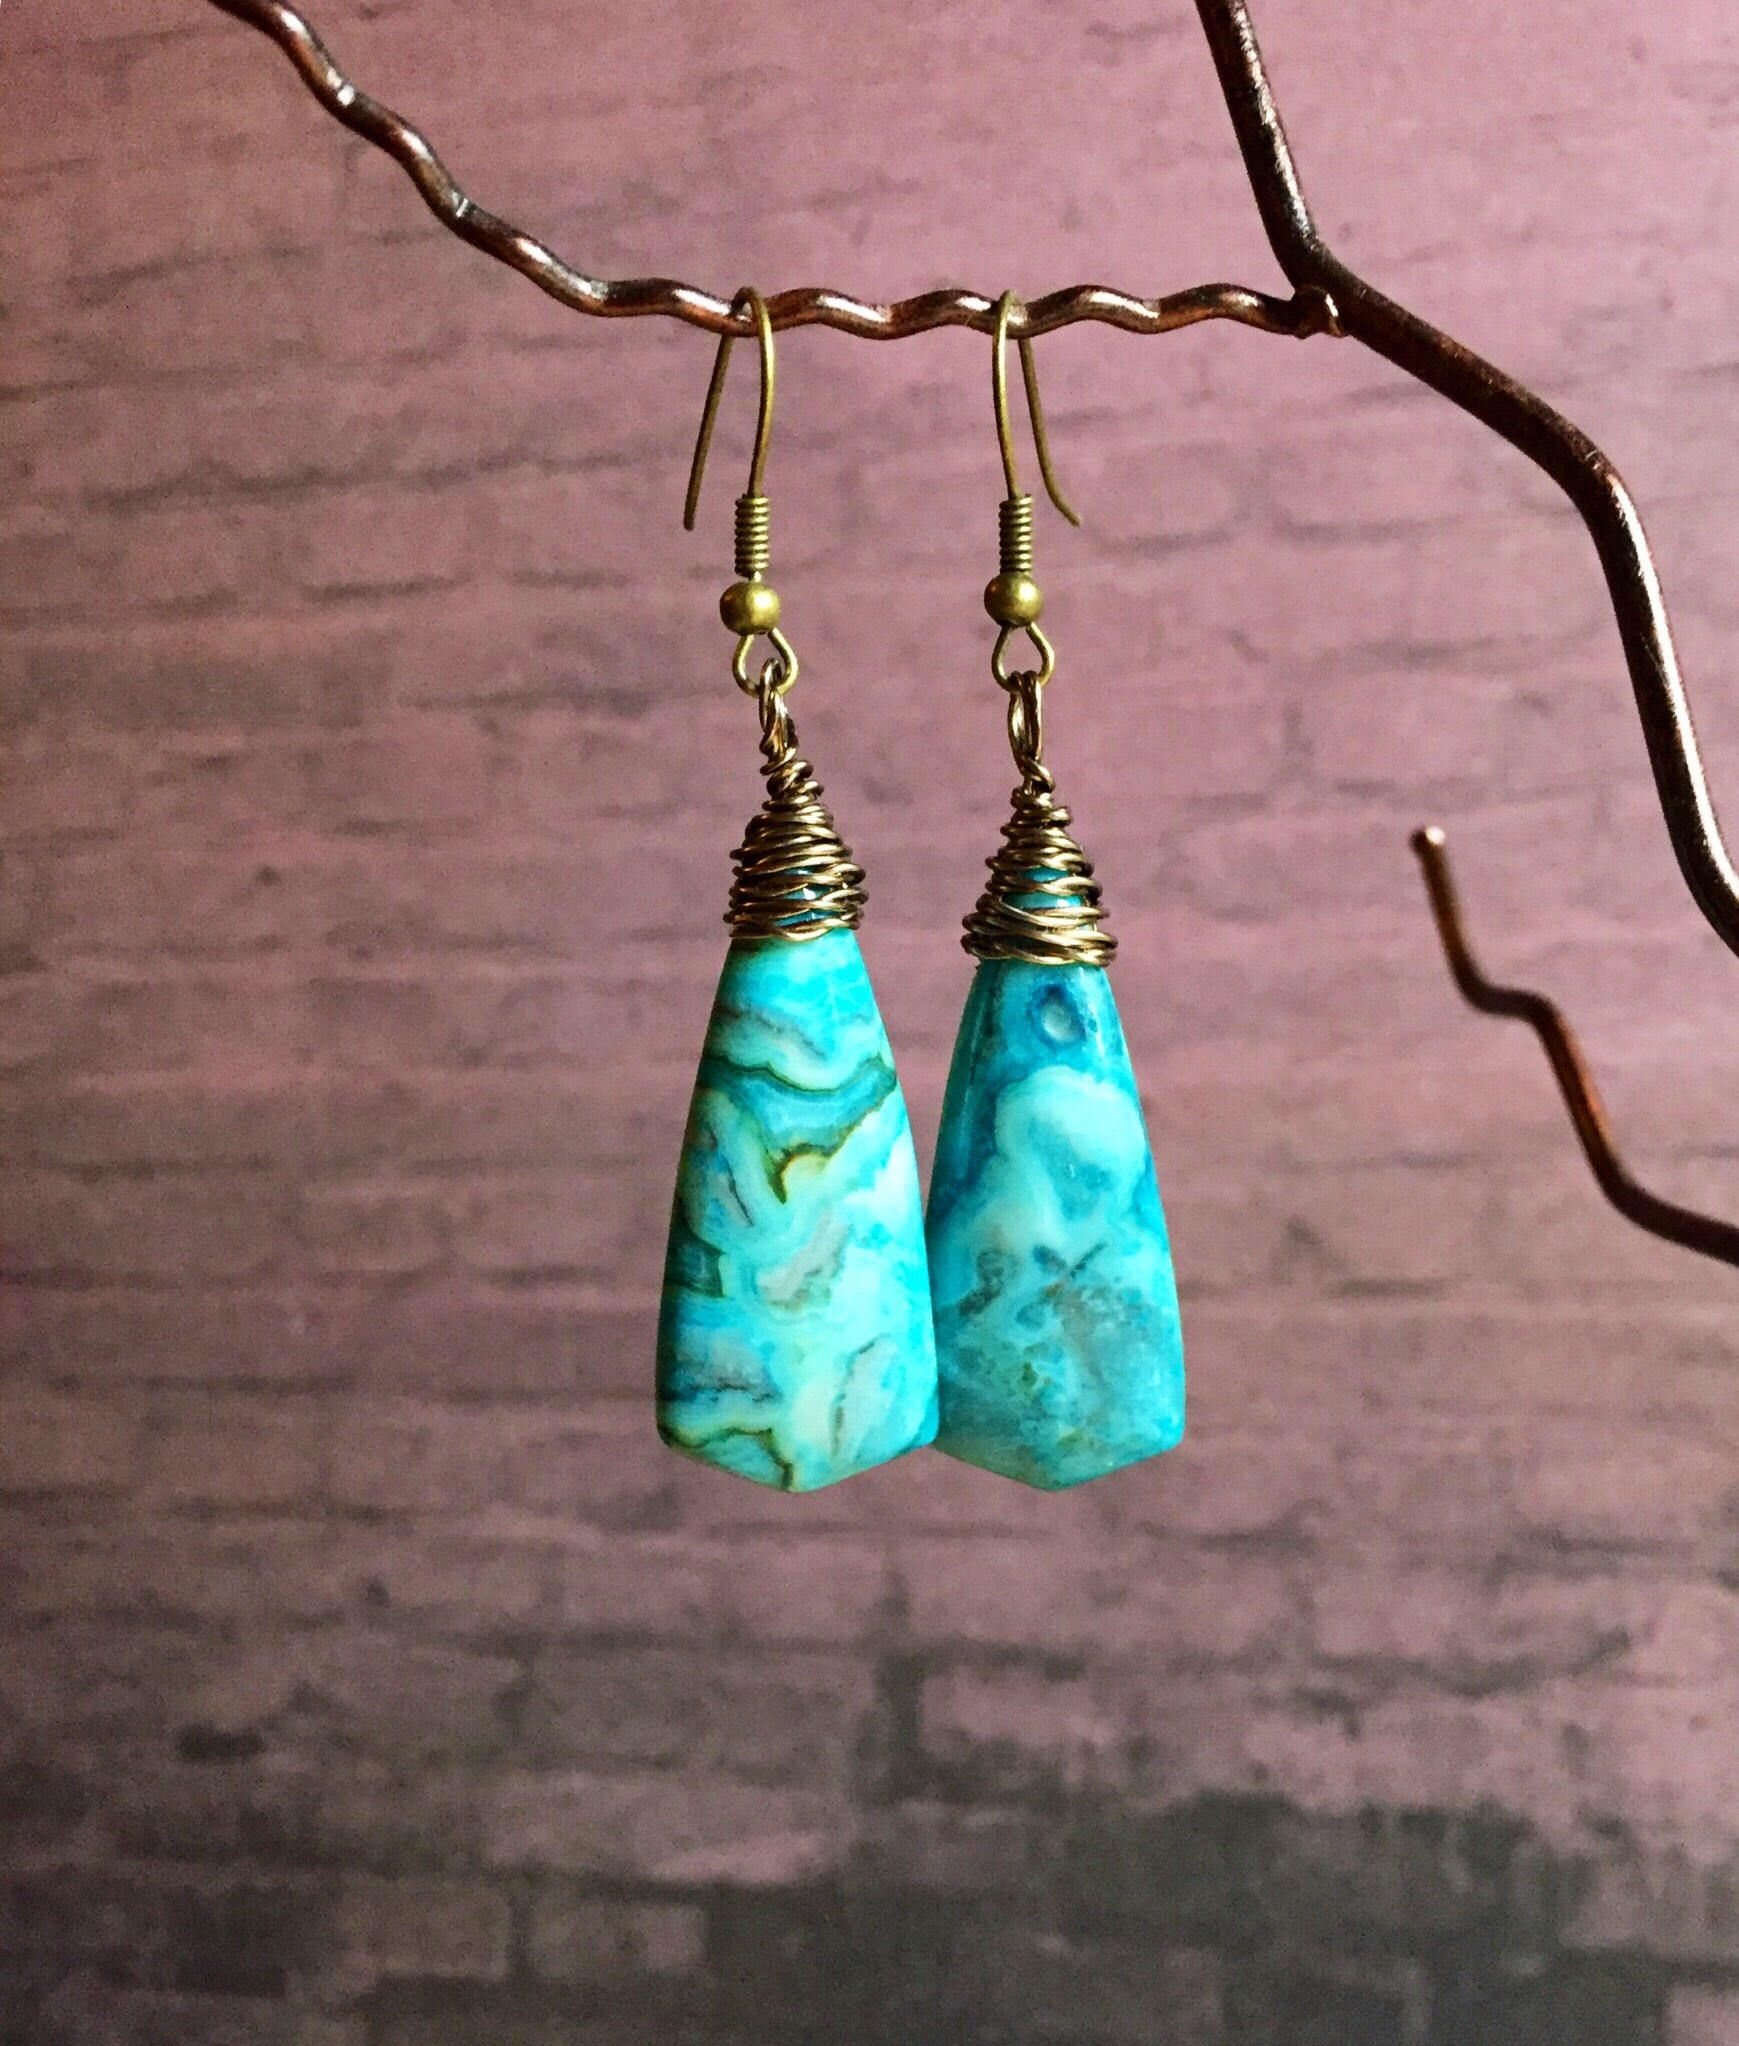 Blue Semi Precious Earrings Boho Agate Jewellery Tribal Jewelry